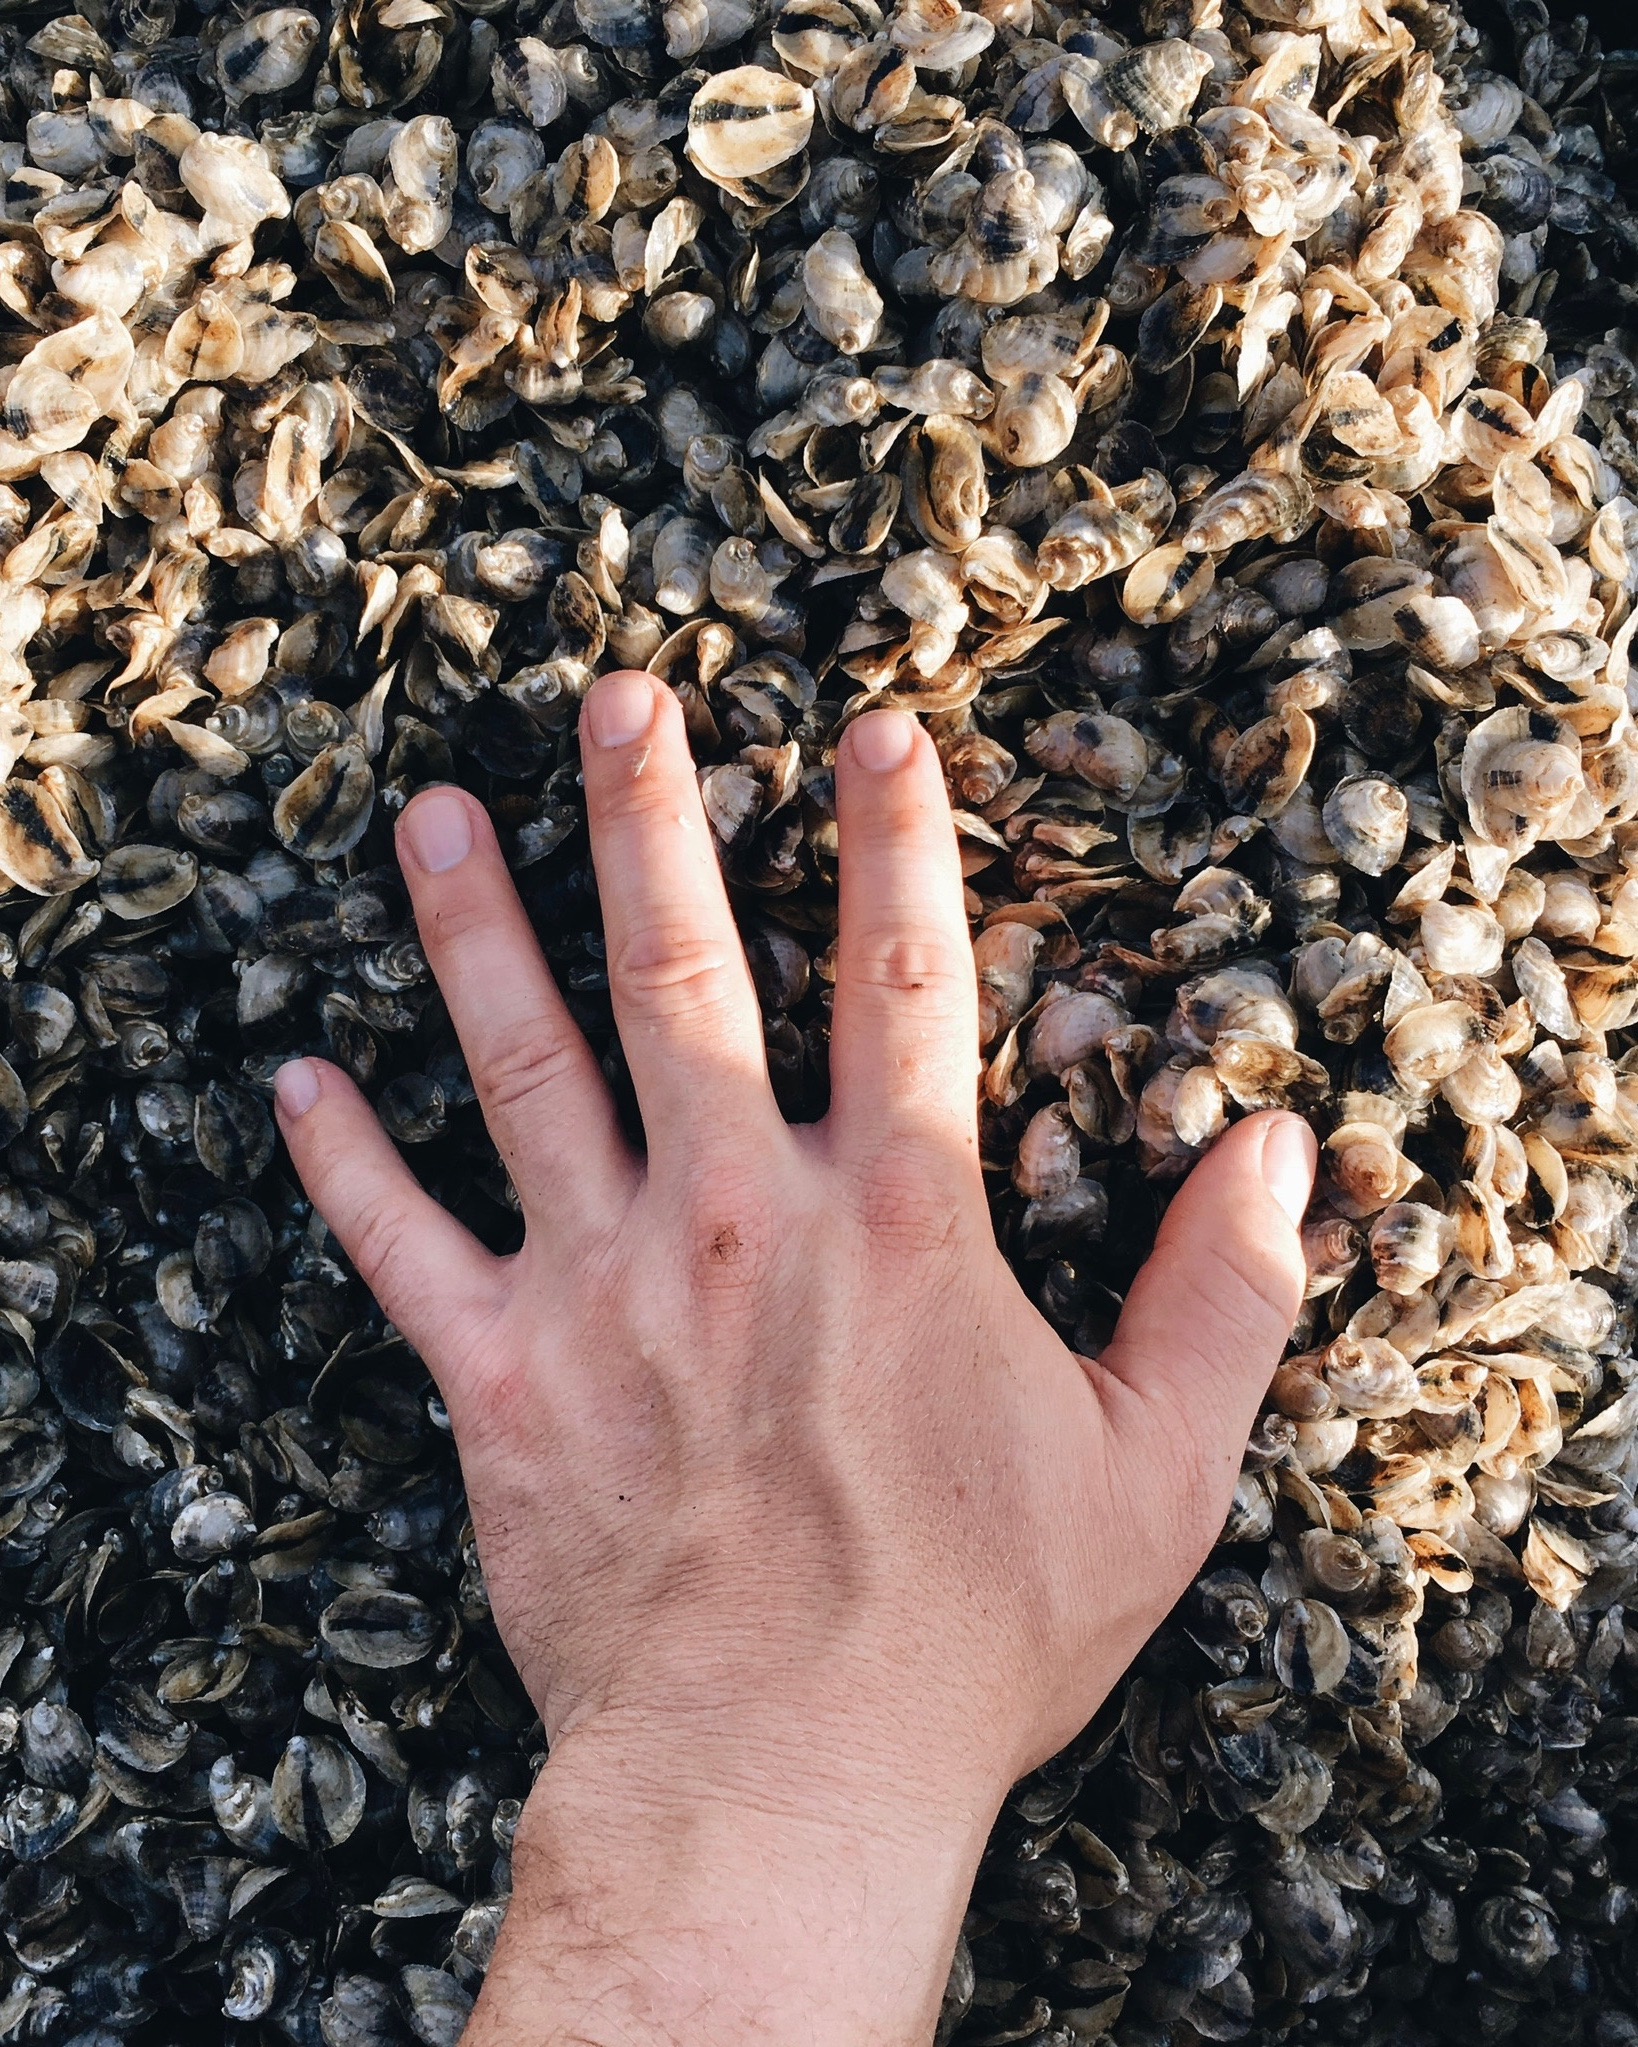 FLO-RIDAS -  Our spat continues to grow as they ride the waves inside of the bags. The shells are hand tumbled and sorted according to size as they grow. this process can take between 6 months to 1.5 years.